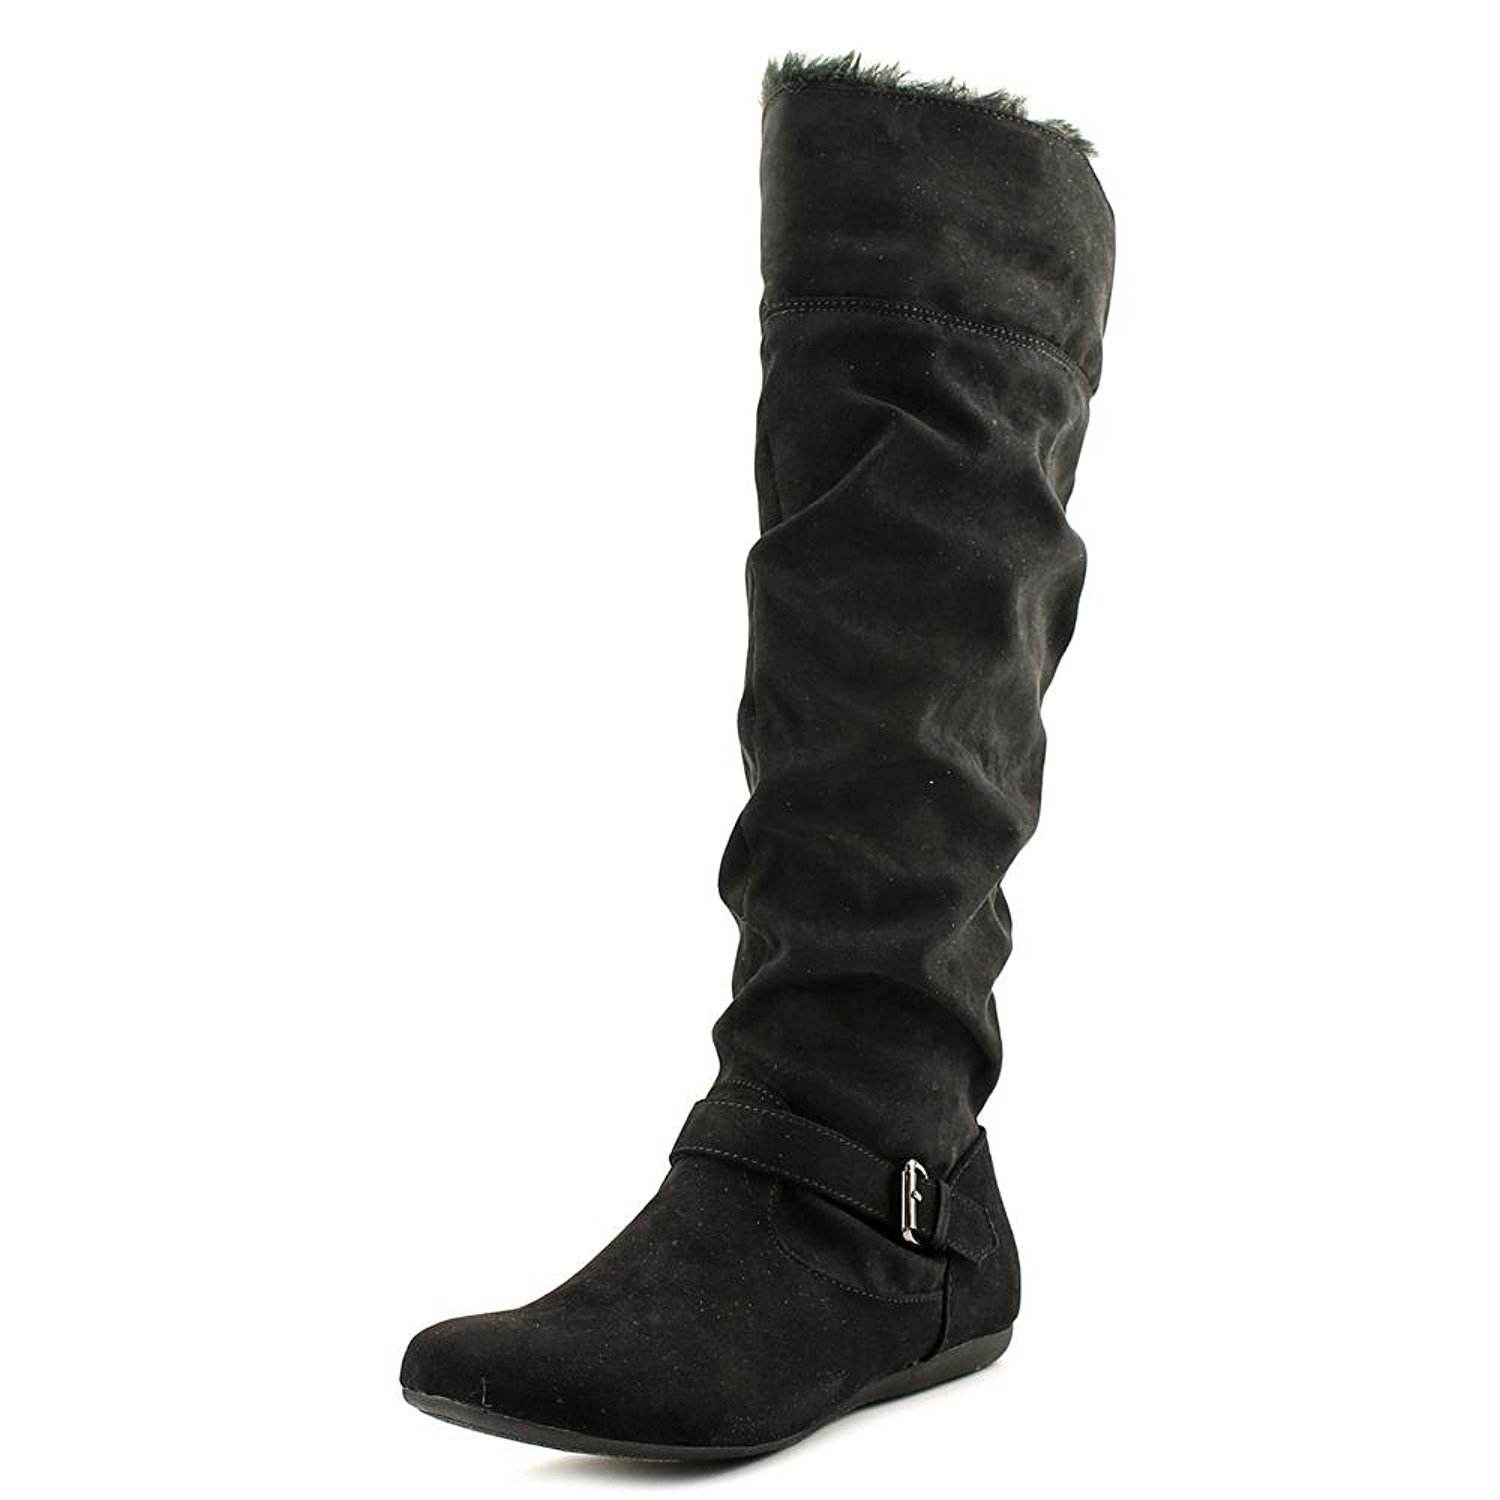 New Directions Womens Sierra Closed Toe Mid-Calf Fashion Boots, Black, Size 7.5